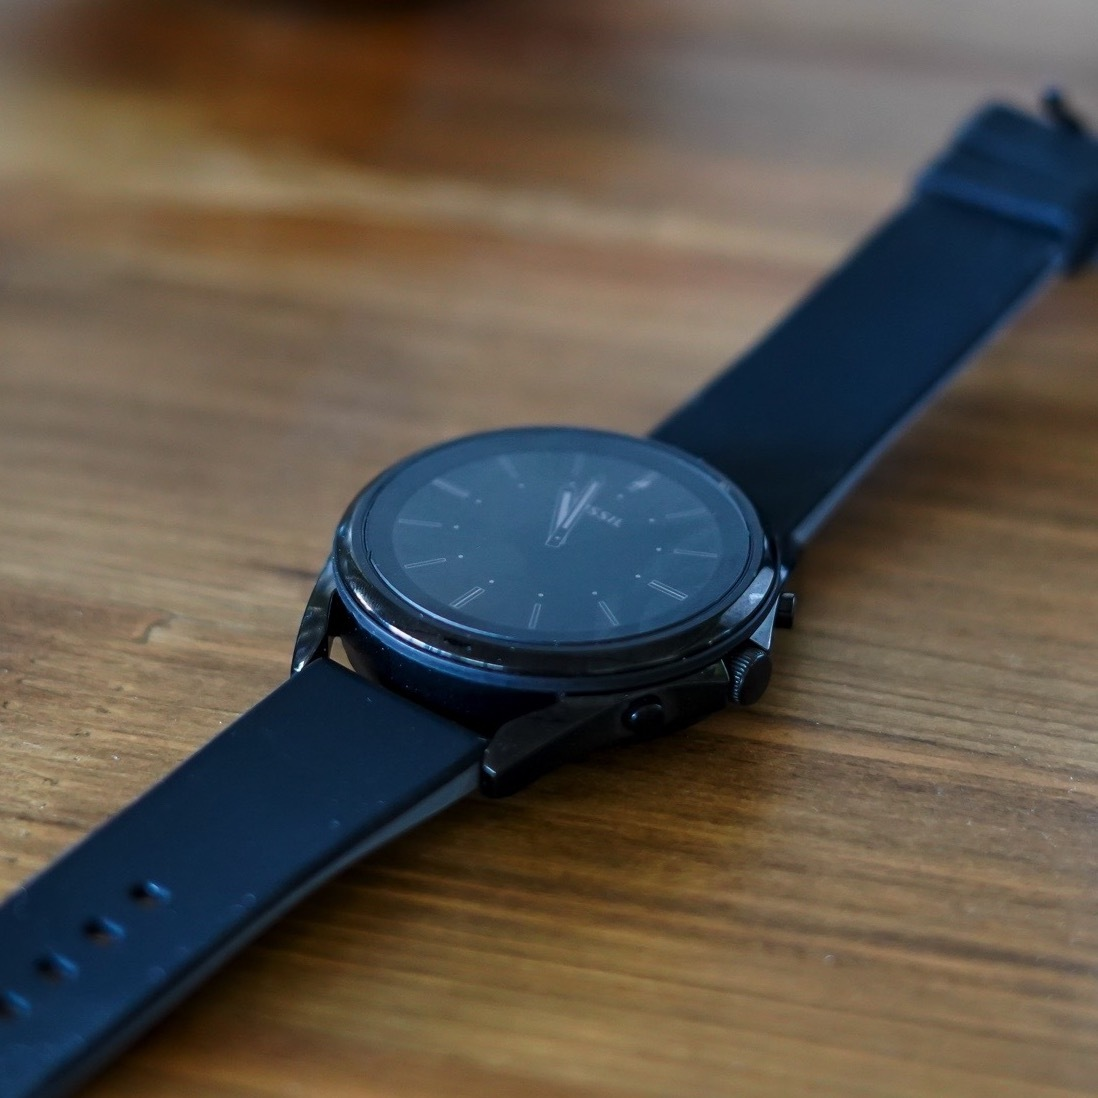 The most powerful Wear OS watches are held back by Wear OS 2